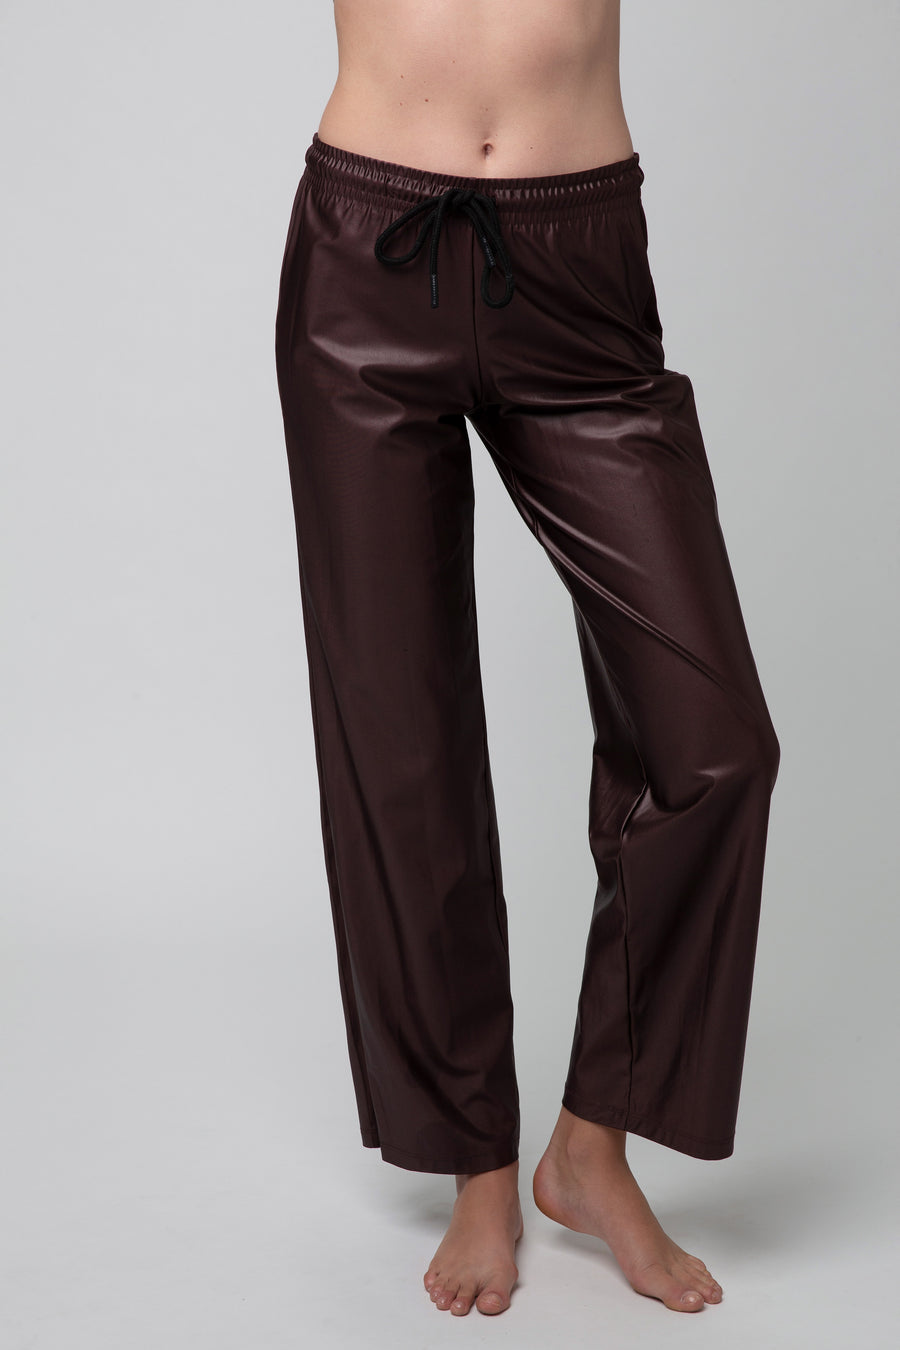 Silkroad Pants - Chestnut